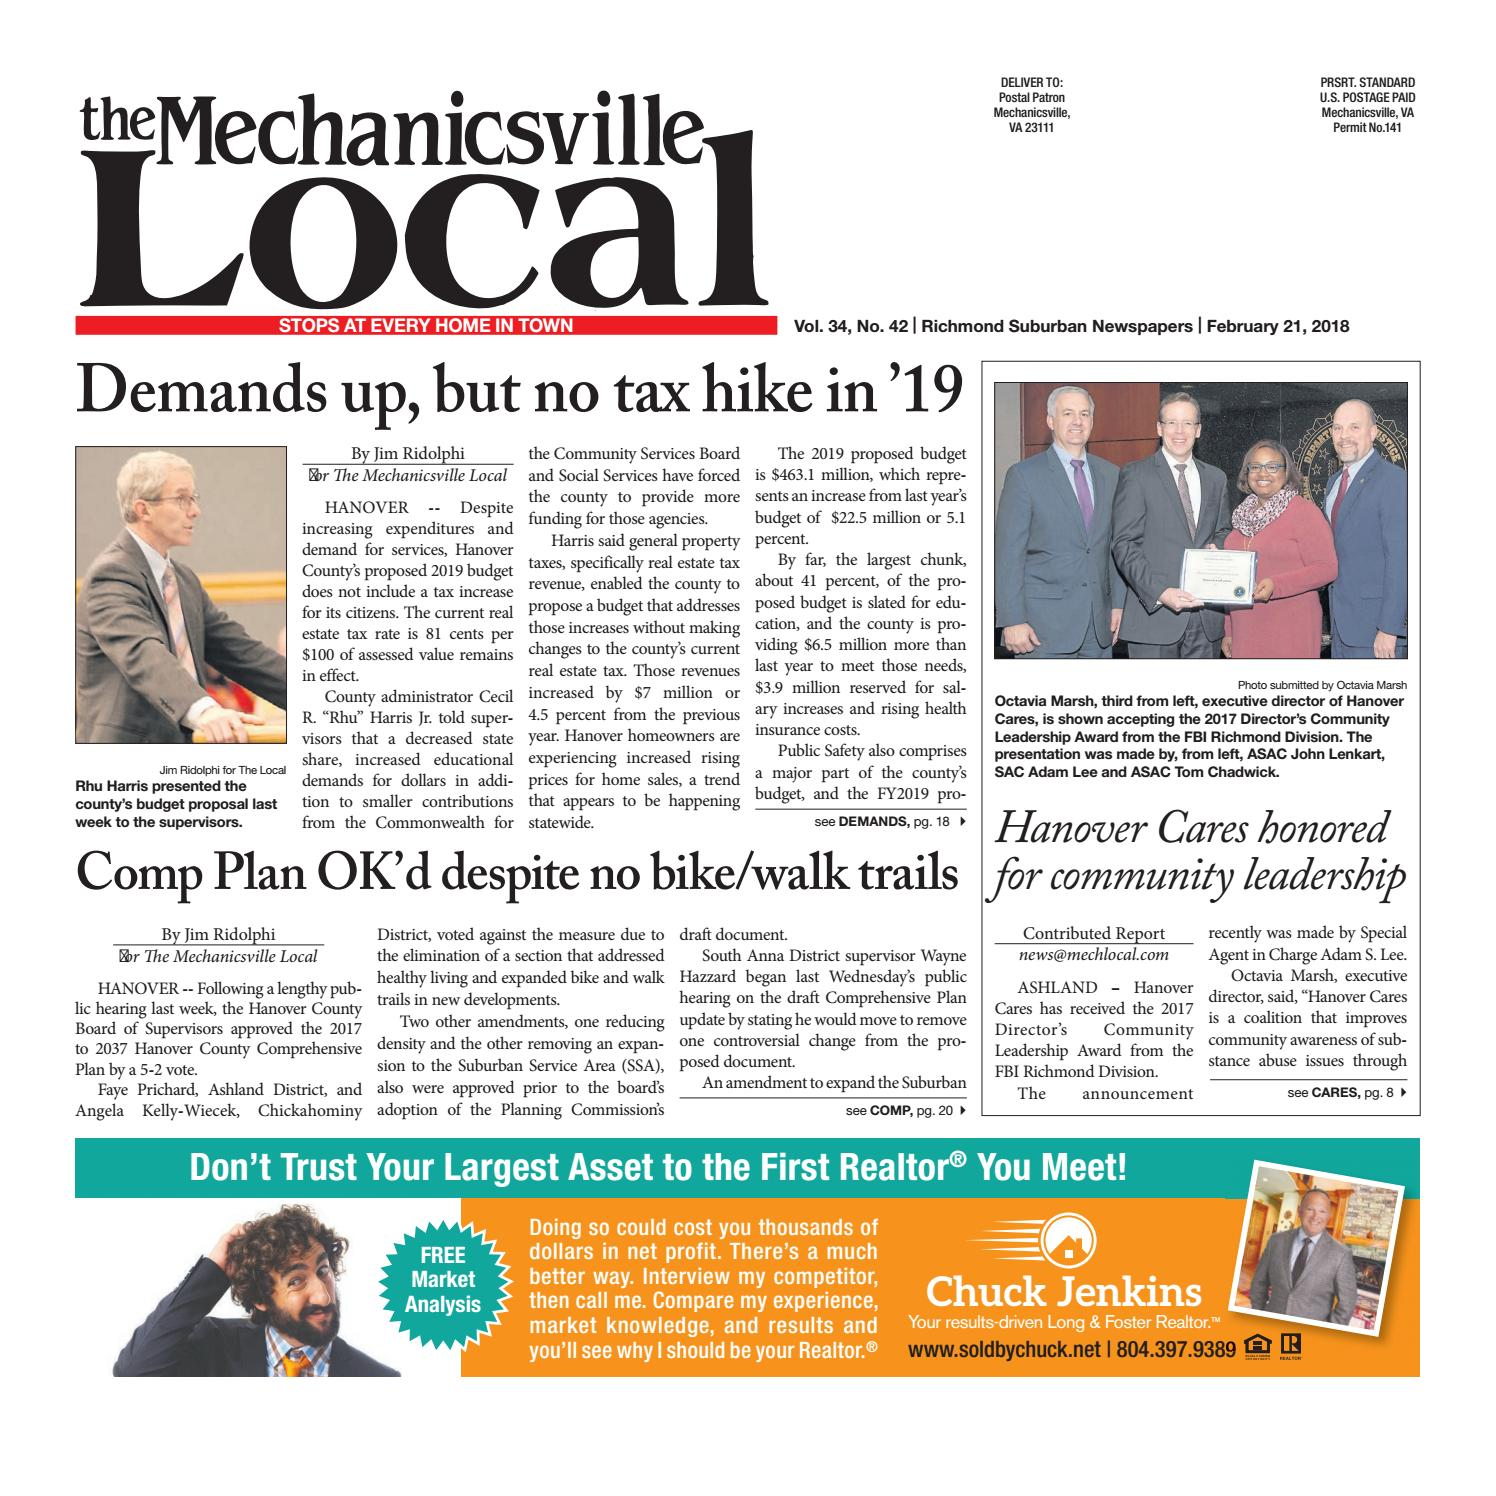 02 21 18 by The Mechanicsville Local - issuu 395010588